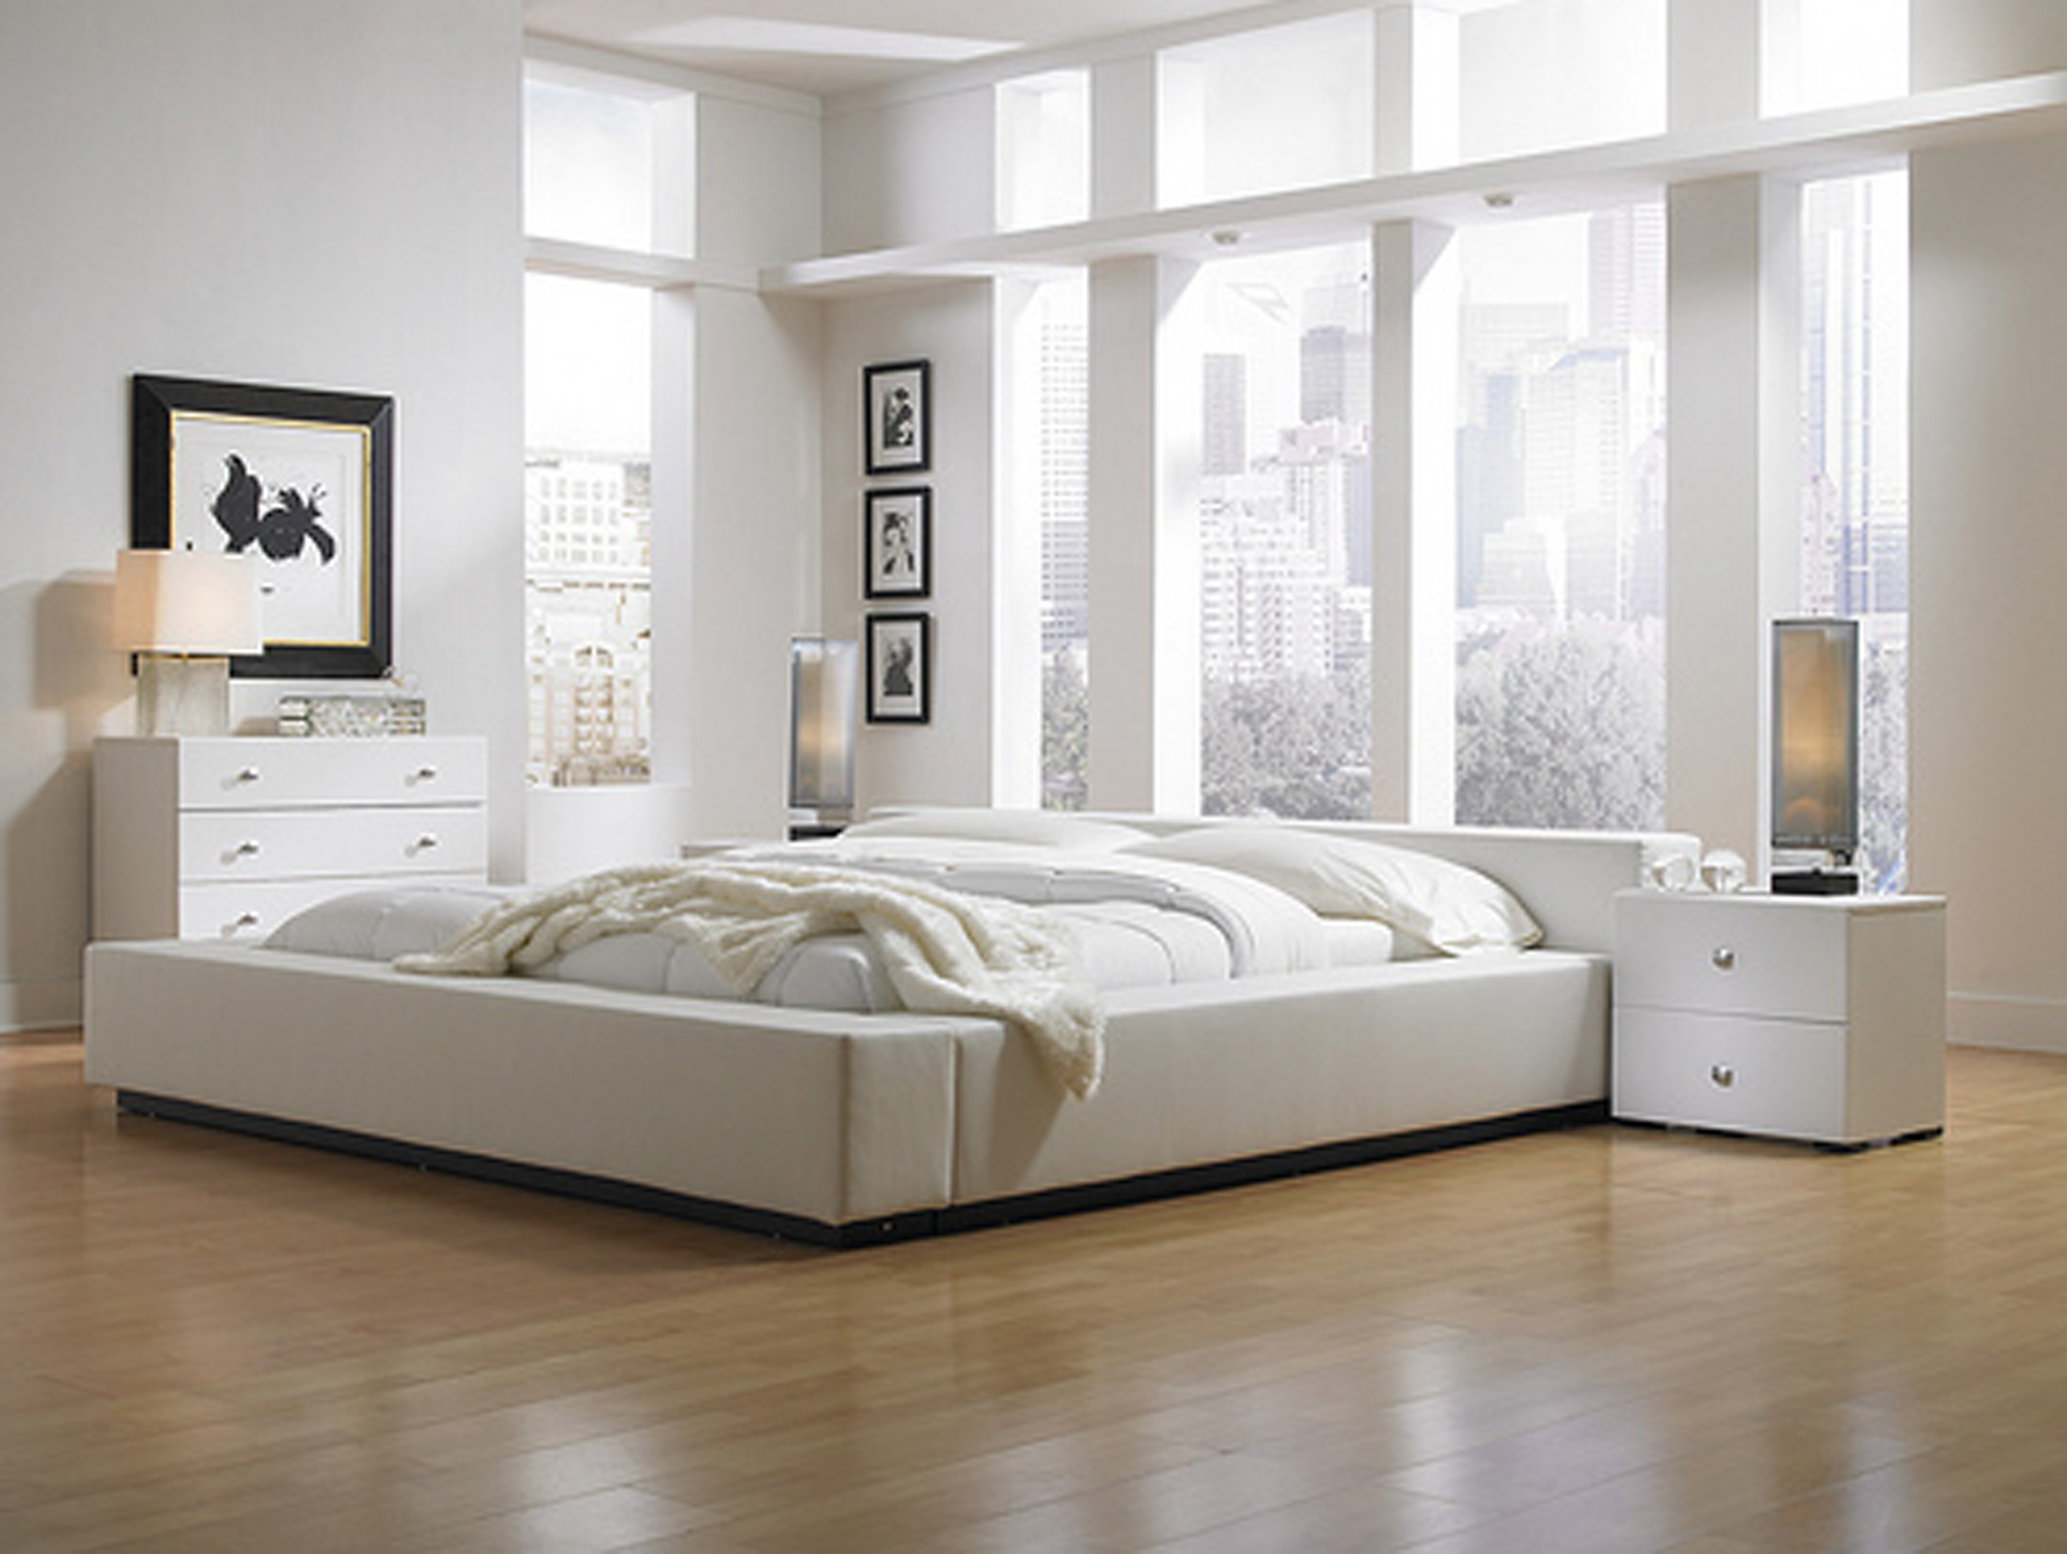 Bedroom Color Ideas For White Furniture Part - 23: White Furniture Bedroom Ideas Interesting Bedroom. View In Gallery Modern  White Master Bedroom Furniture Ideas